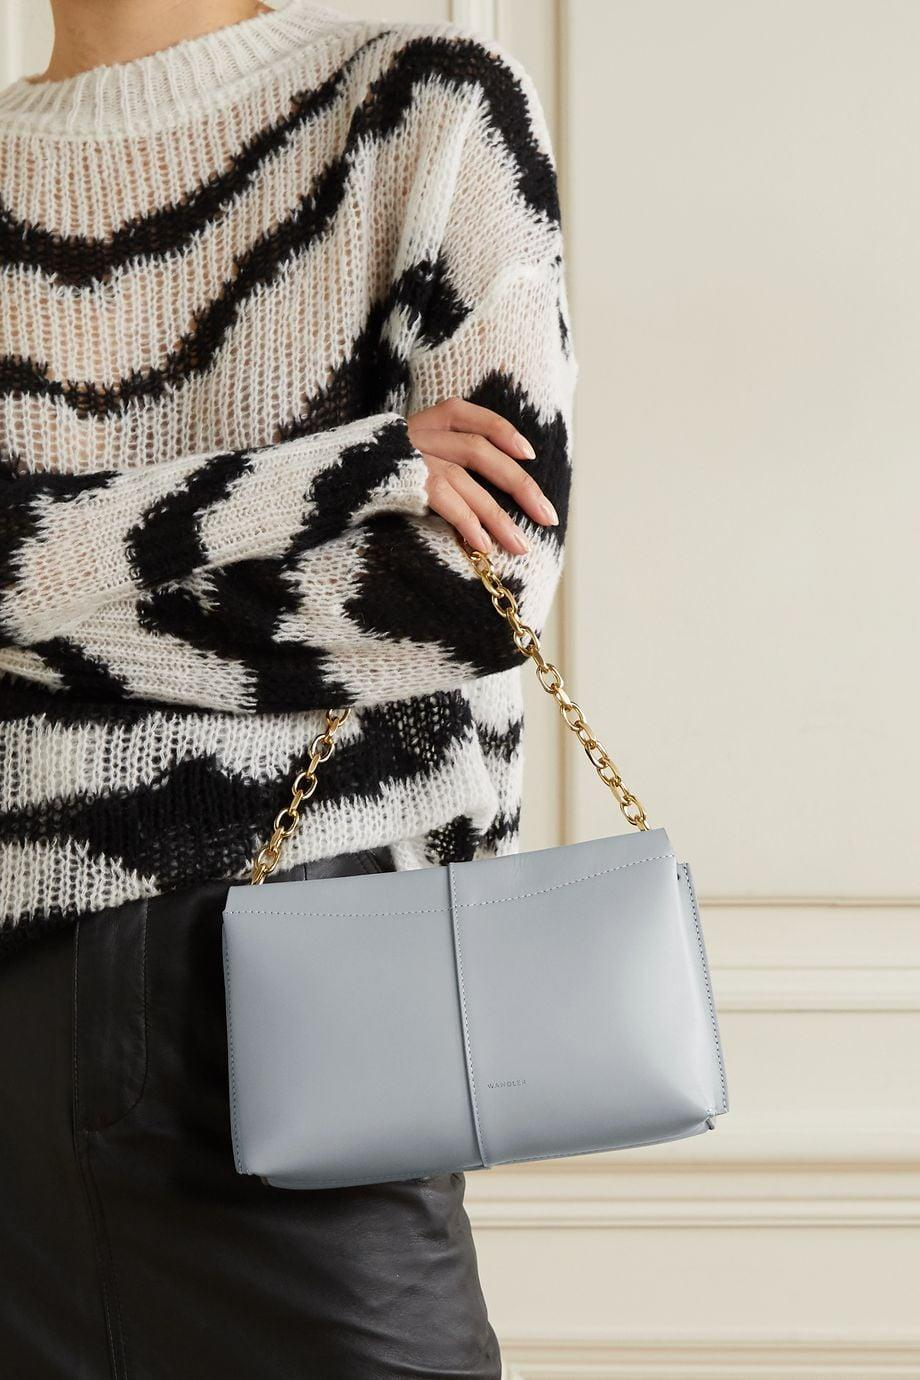 """<p>""""New year, new bag, right? I can't stop dreaming about the <span>Wandler Carly Mini Leather Shoulder Bag</span> ($530). The sleek silhouette, double interior pocket, and cool chain strap ticks every box on my cool new bag wish list. I can already envision myself wearing it with sweaters and dresses for the rest of the year."""" - KJ</p>"""